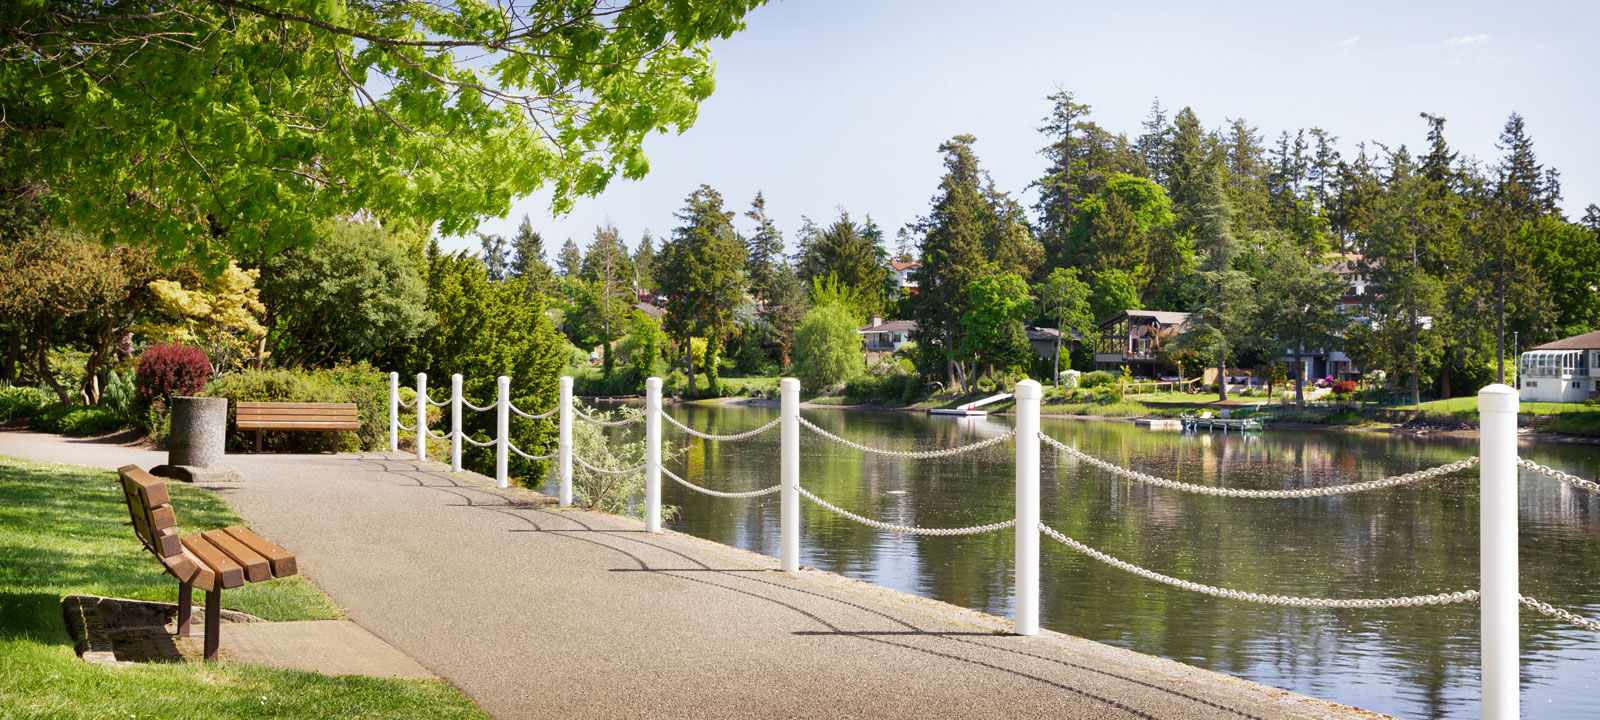 Park with lake view at Amica On the Gorge senior living residence.